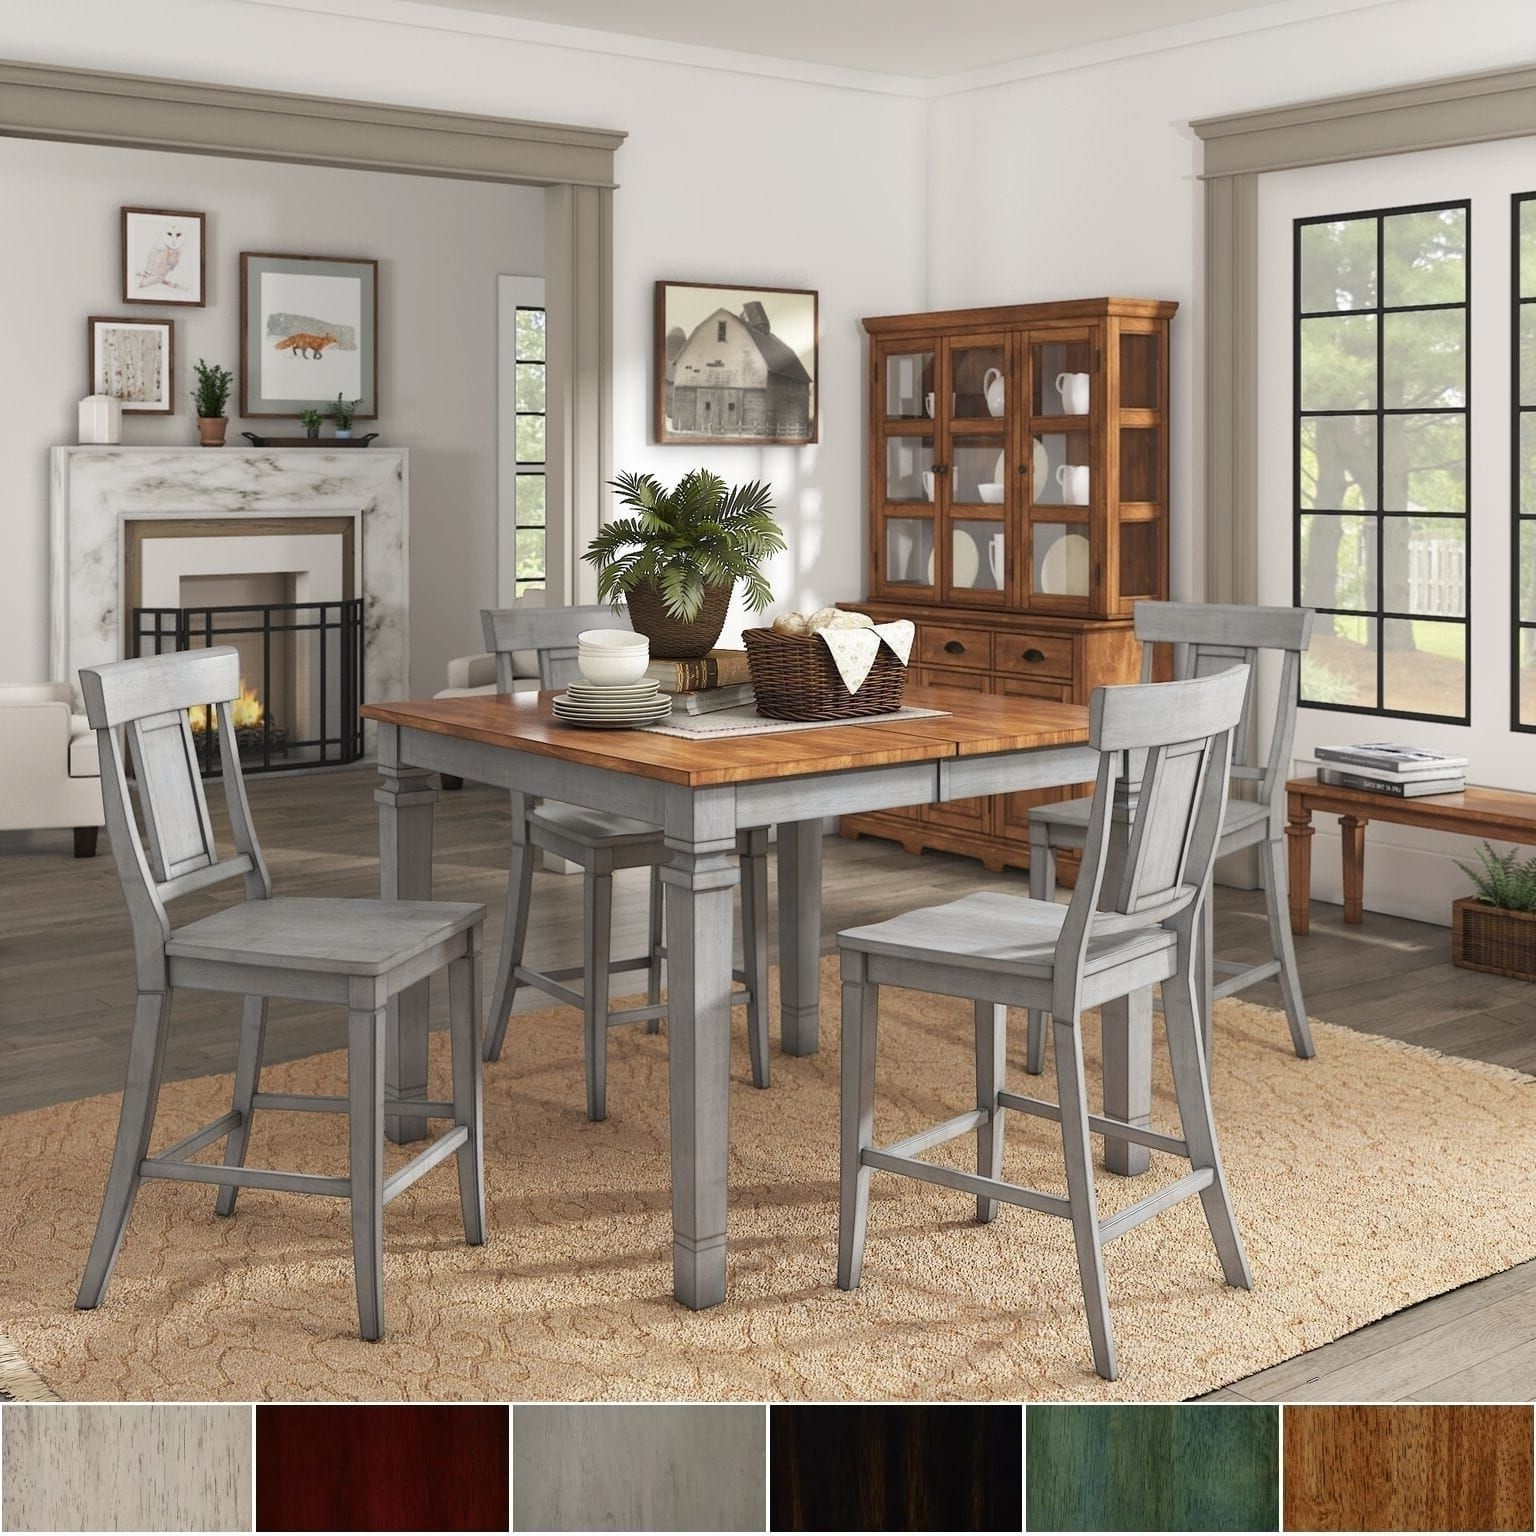 Elena Antique Grey Extendable Counter Height Dining Set – Panel Back Inside Widely Used Jameson Grey 5 Piece Counter Sets (View 18 of 25)